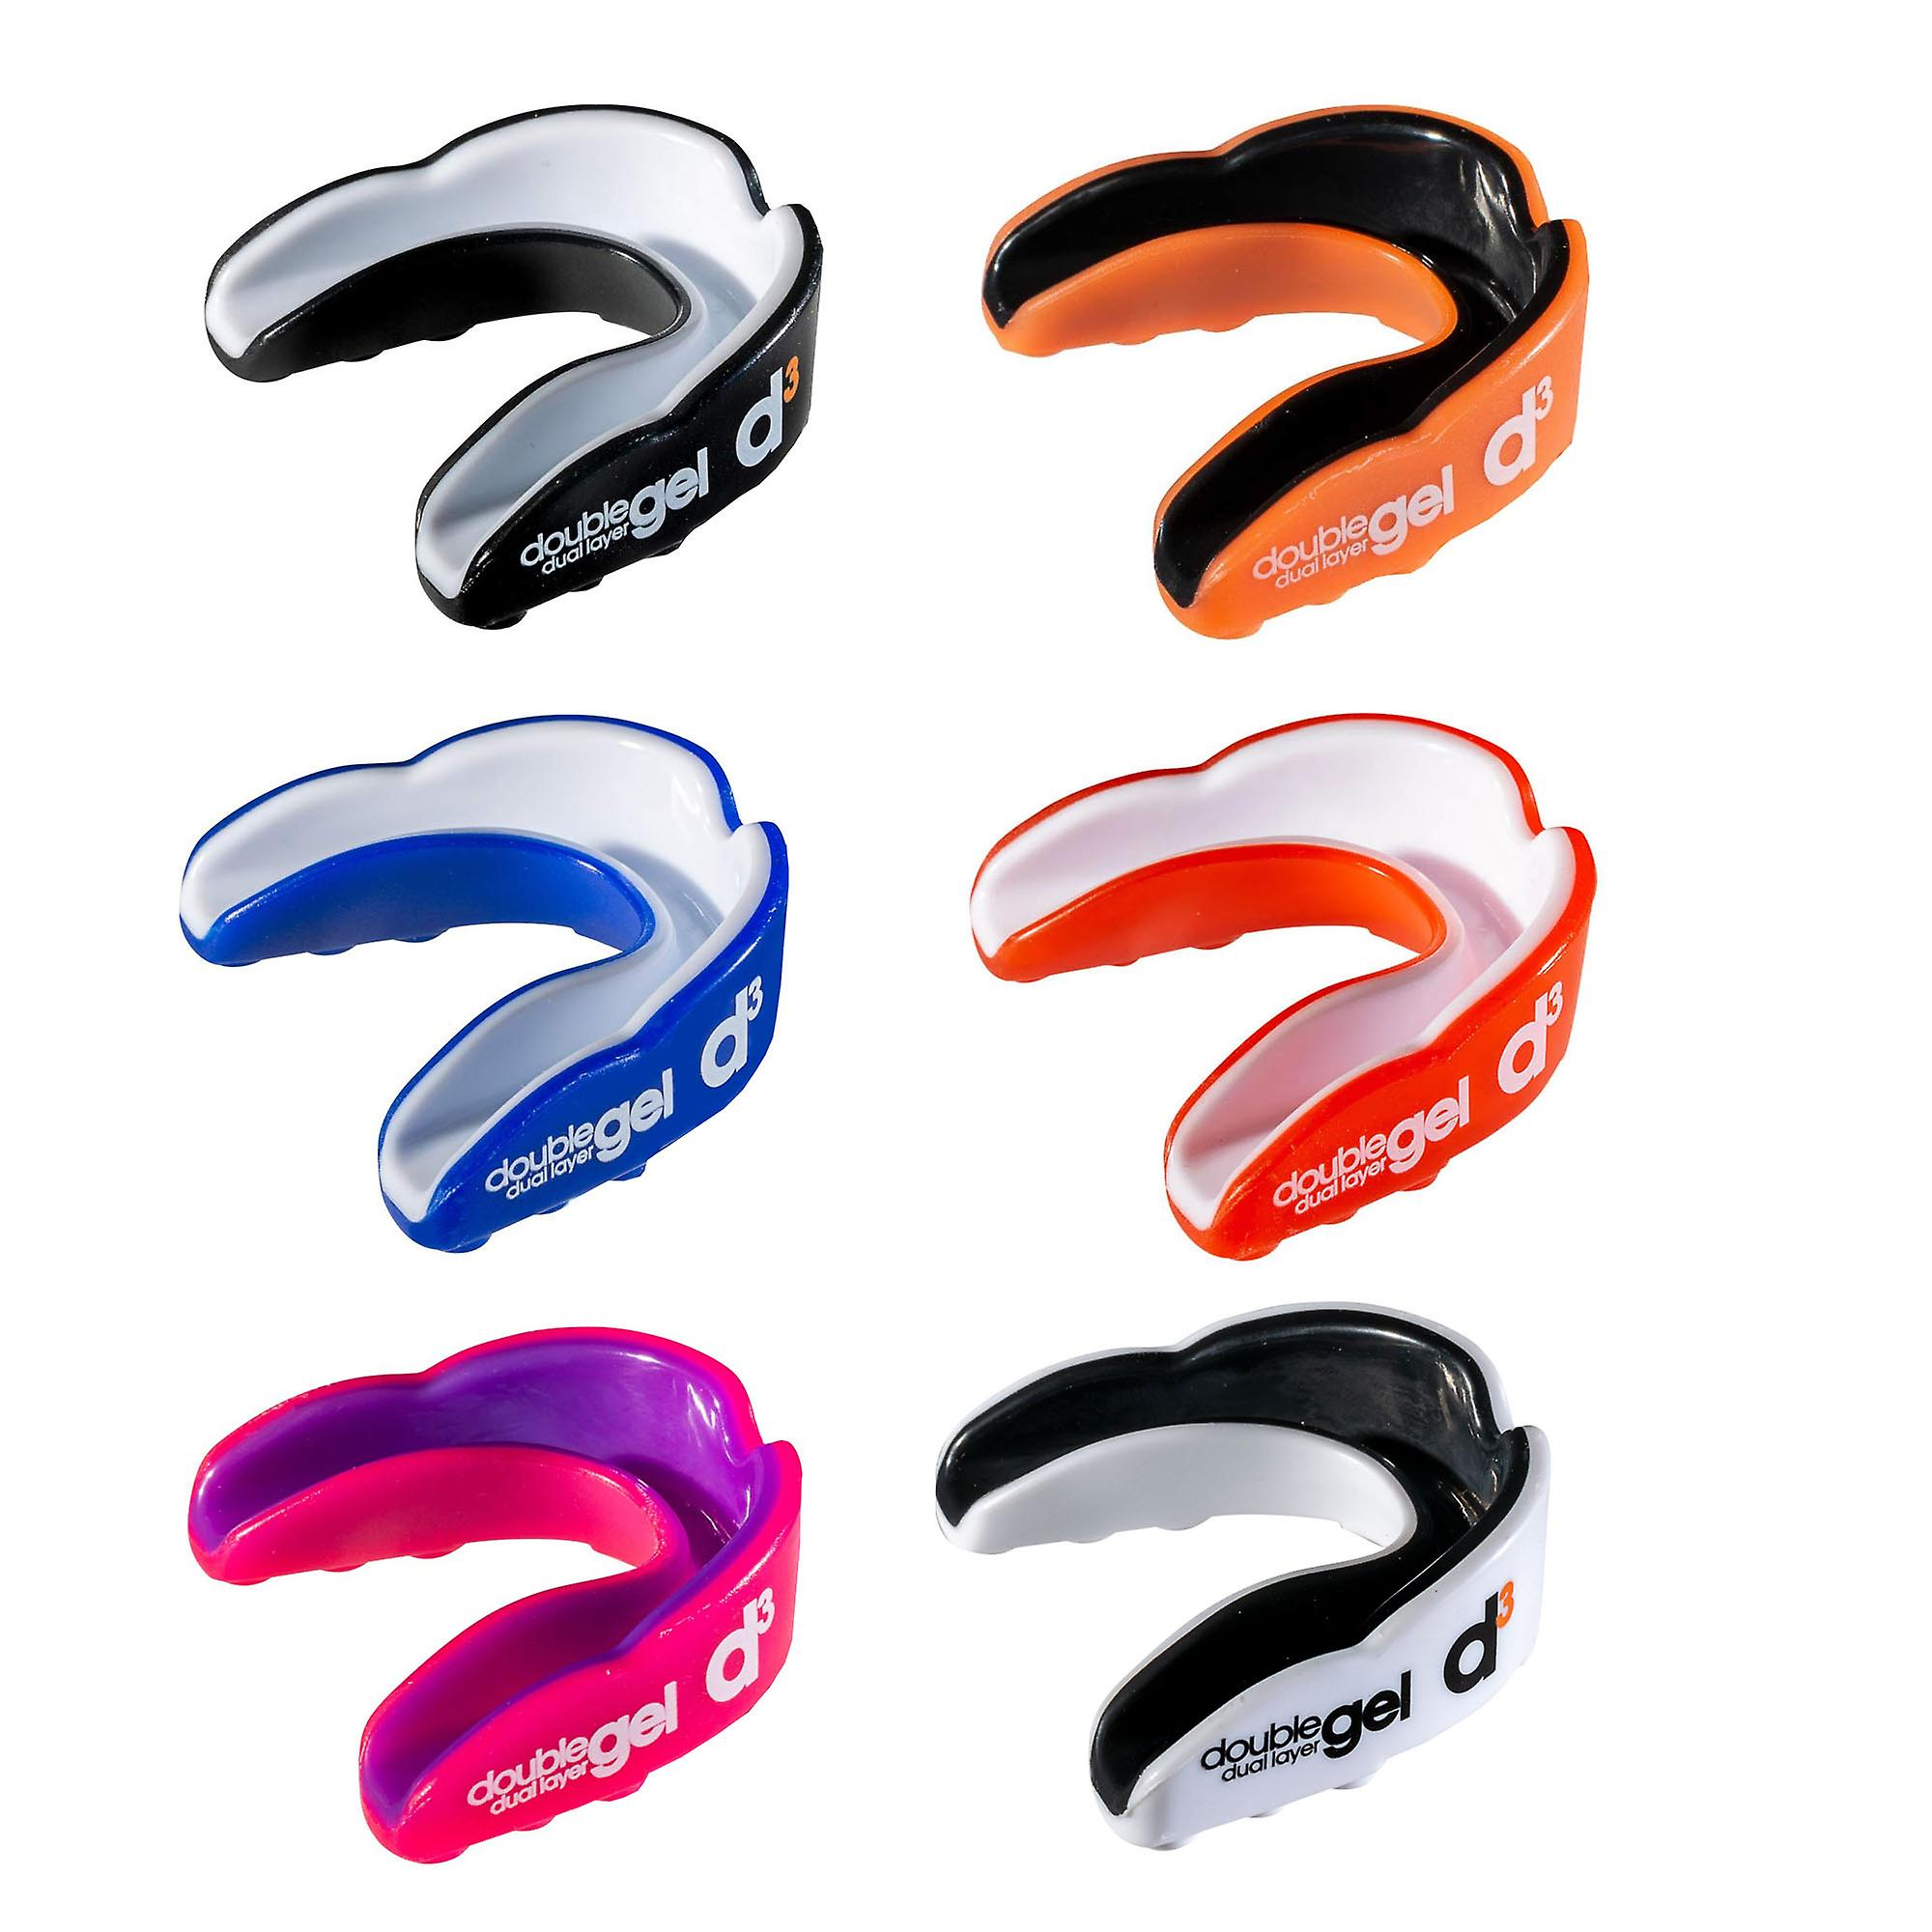 d3 Dual Layer Gel Sports Rugby Boxing Mouthguard Gumshield Adult